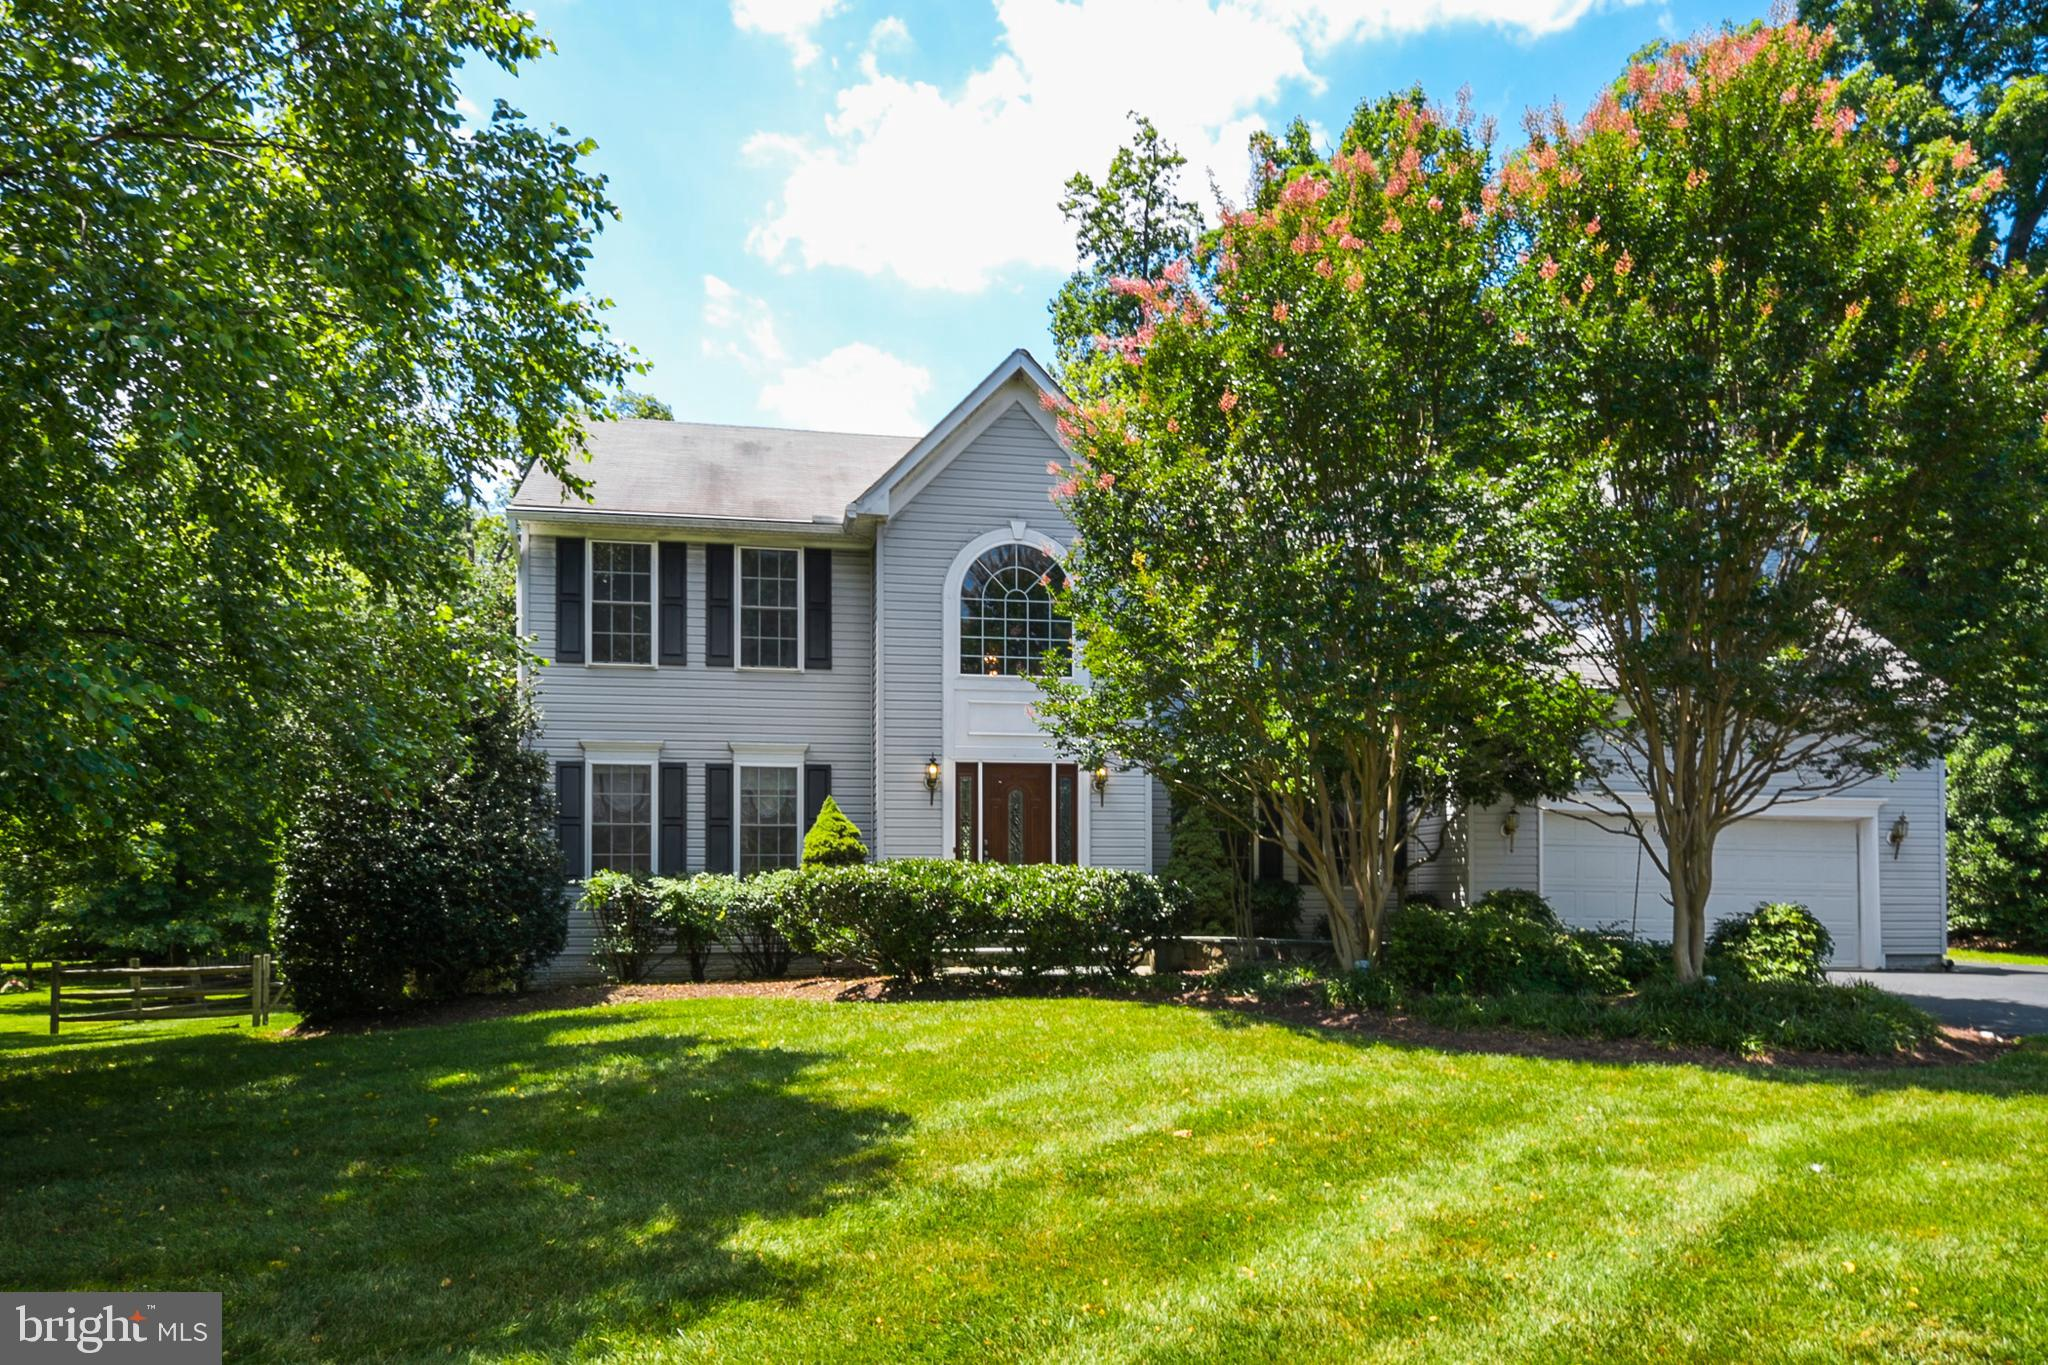 Plenty of room to grow into this 5 bedroom 3.5 bath home! As you walk up to the home a beautiful sla